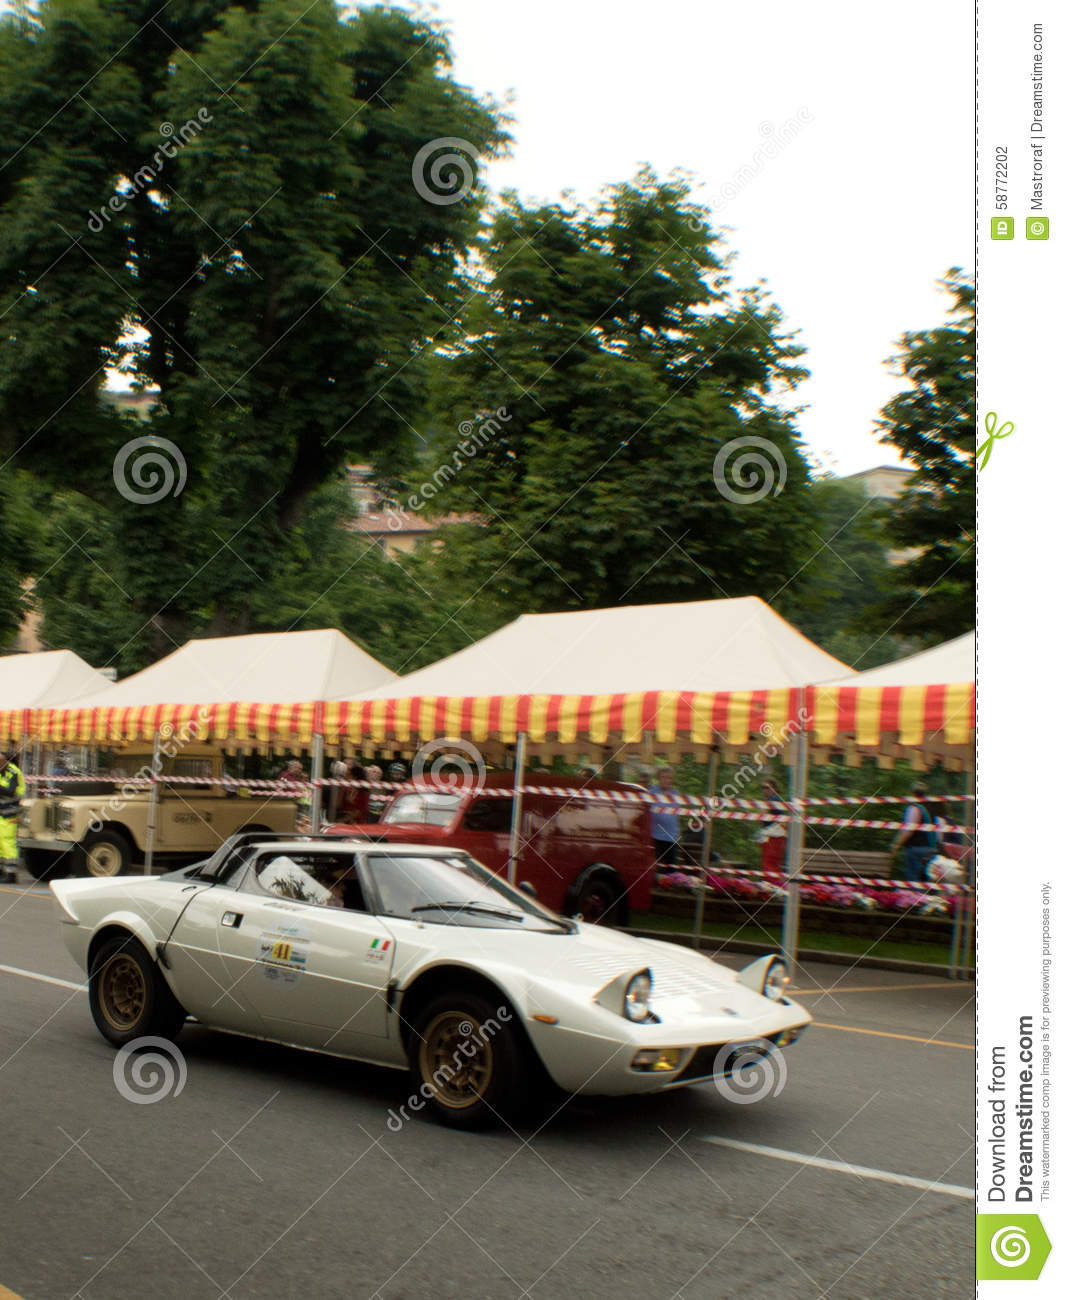 lancia stratos at bergamo historic grand prix 2015 editorial photography. Black Bedroom Furniture Sets. Home Design Ideas